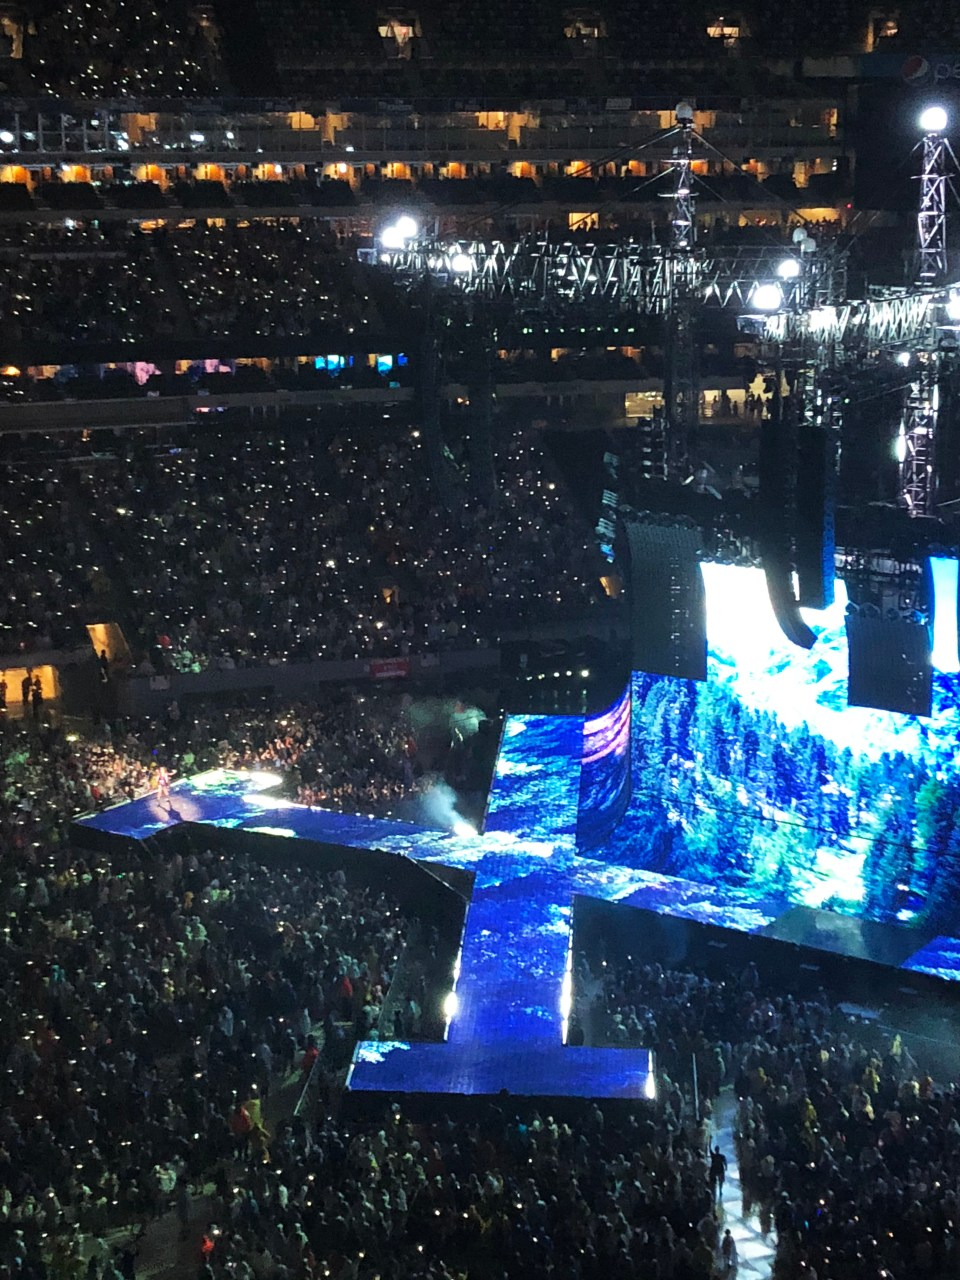 Taylor Swift Reputation Tour - East Rutherford 9